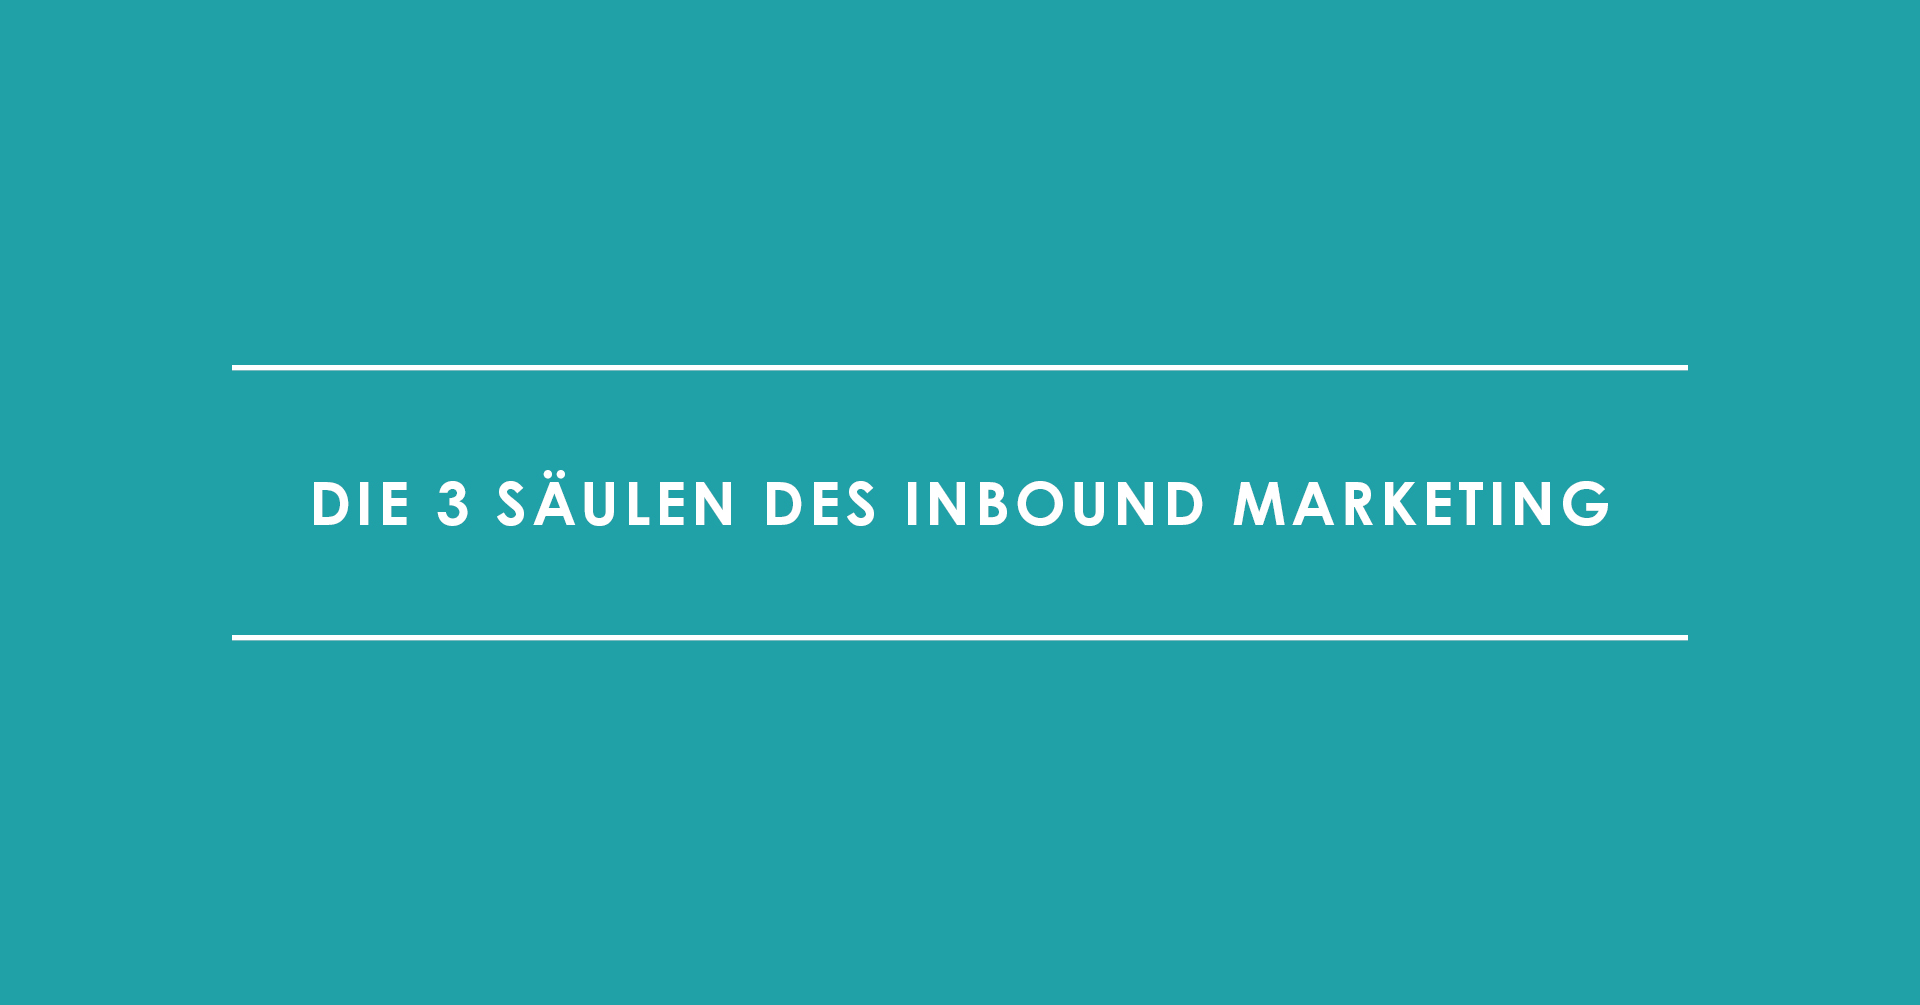 Die 3 Säulen des Inbound Marketing